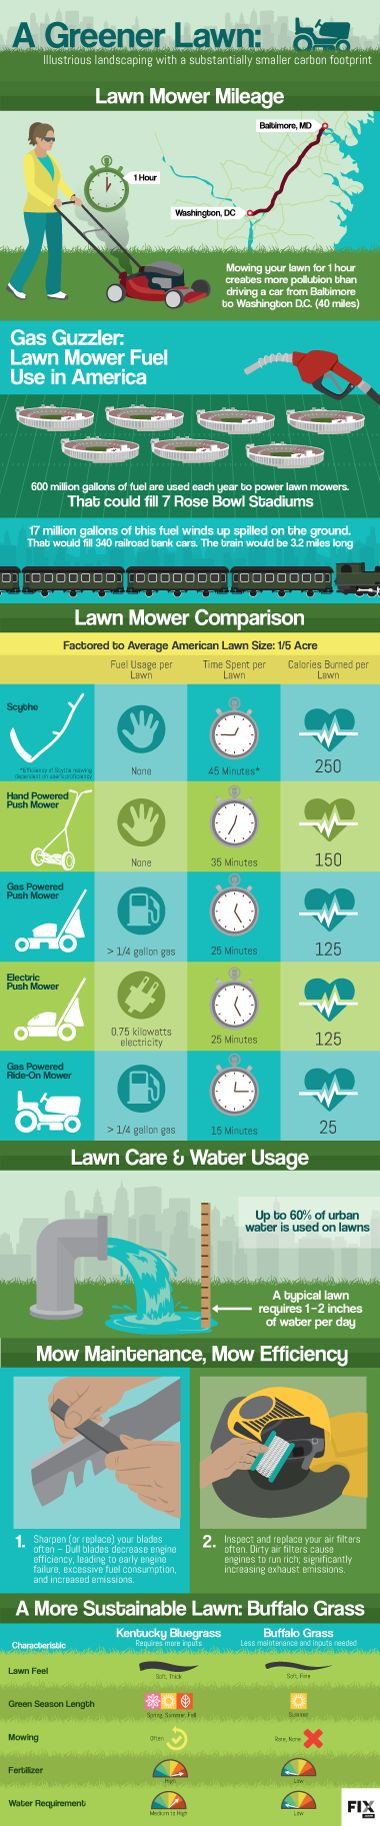 Surprisingly, your lawn mower can emit the same amount of green house gas, in one hour, as driving your car 45 miles.